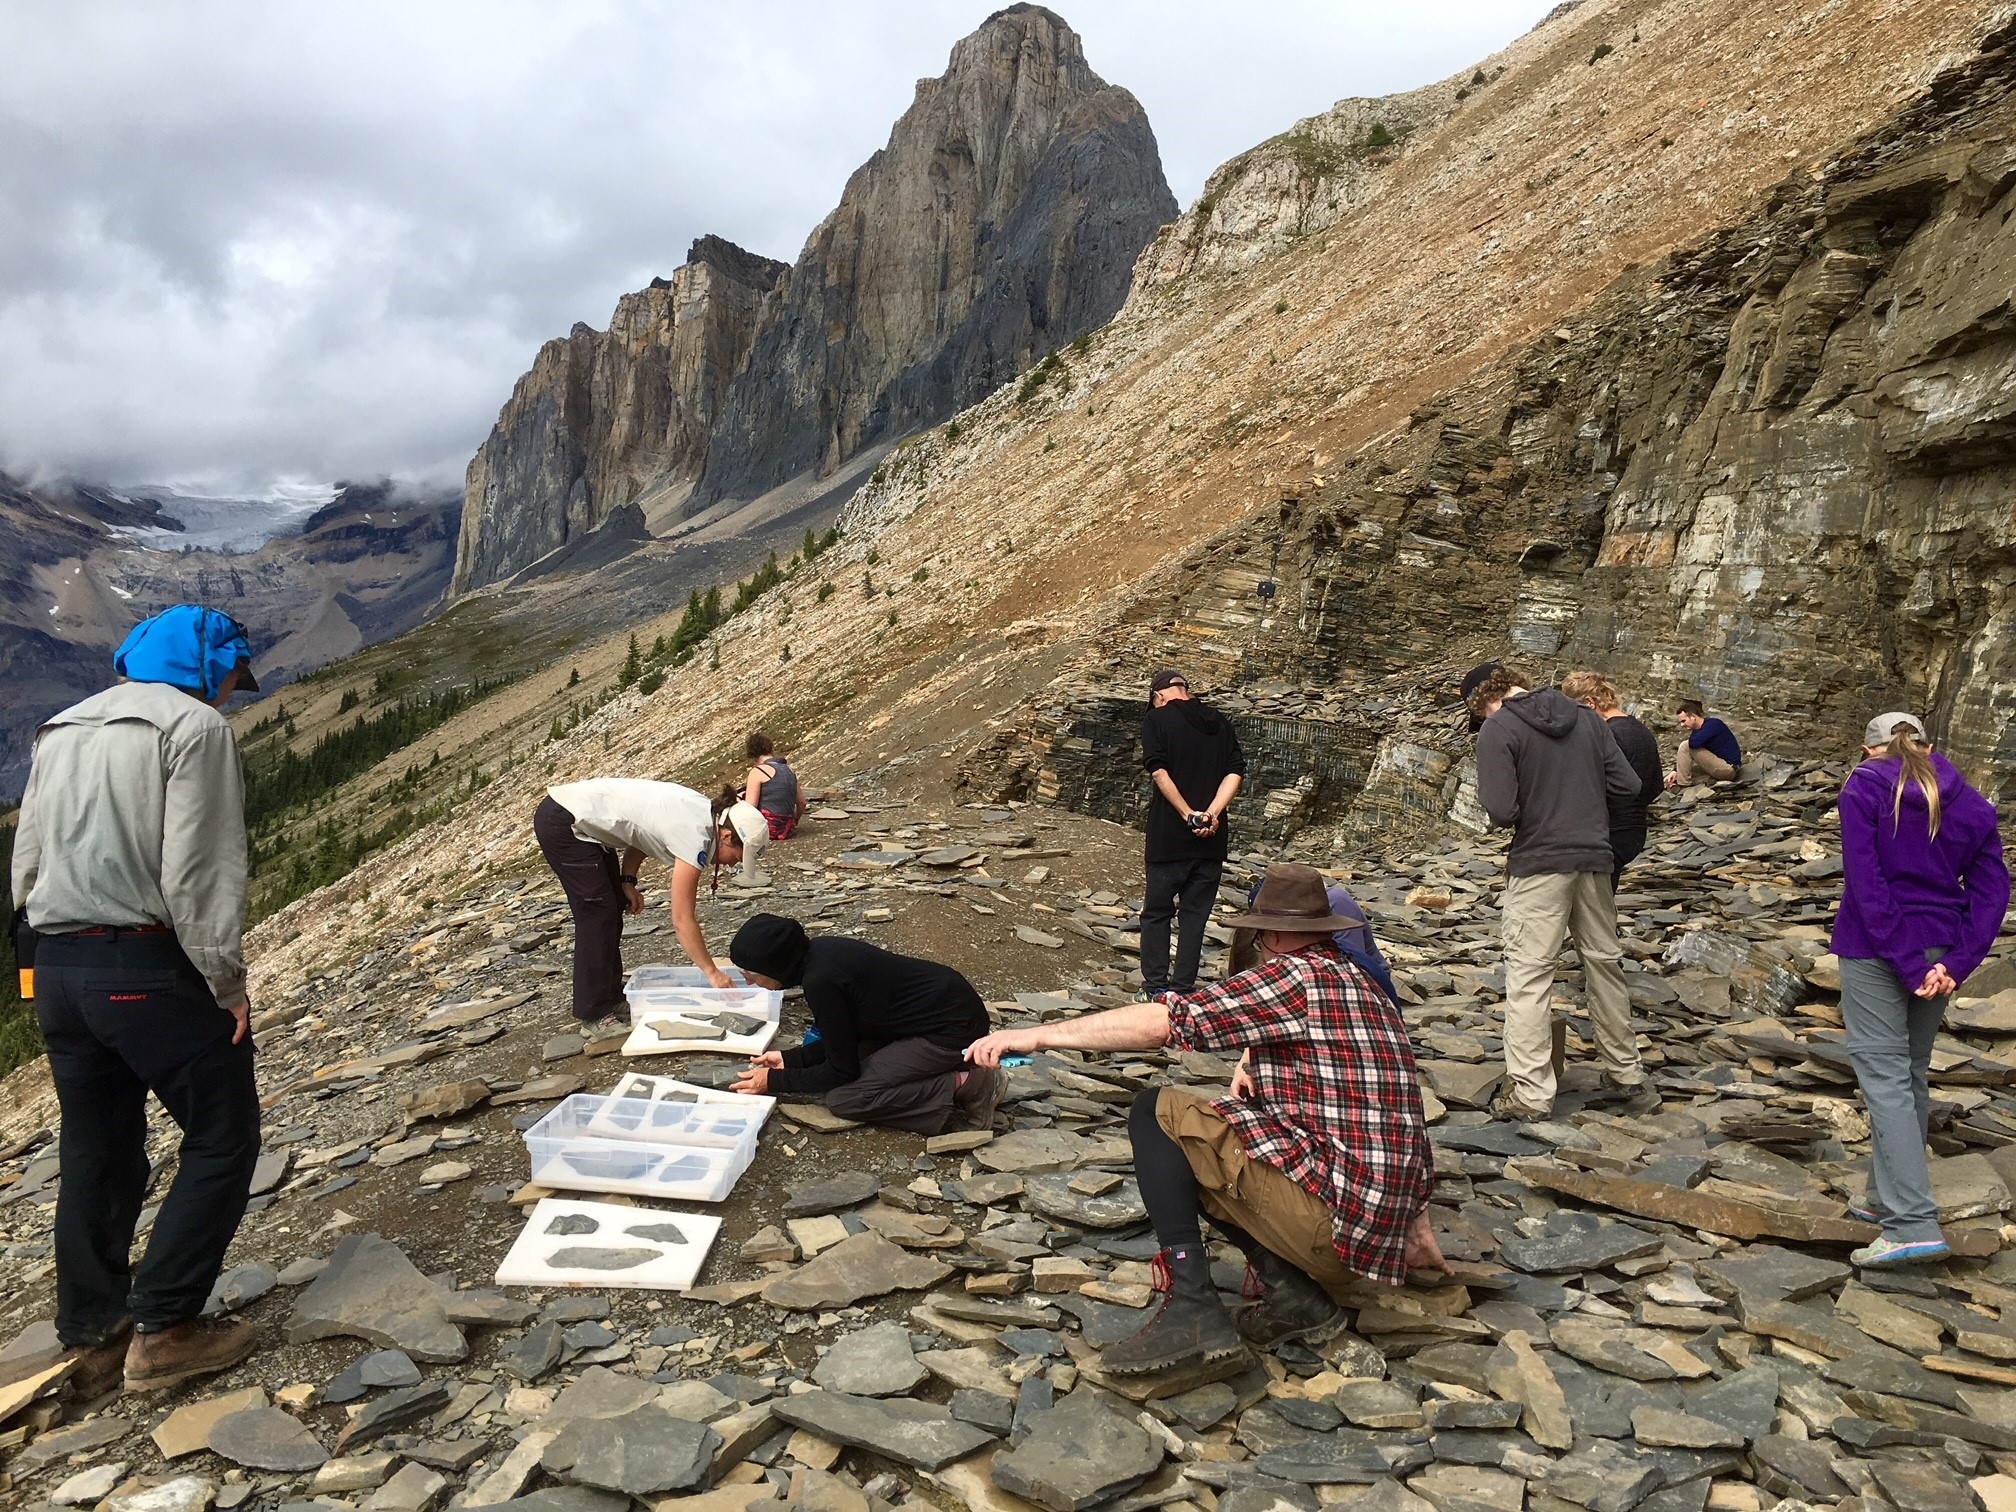 Burgess Shale hikers fossil hunting